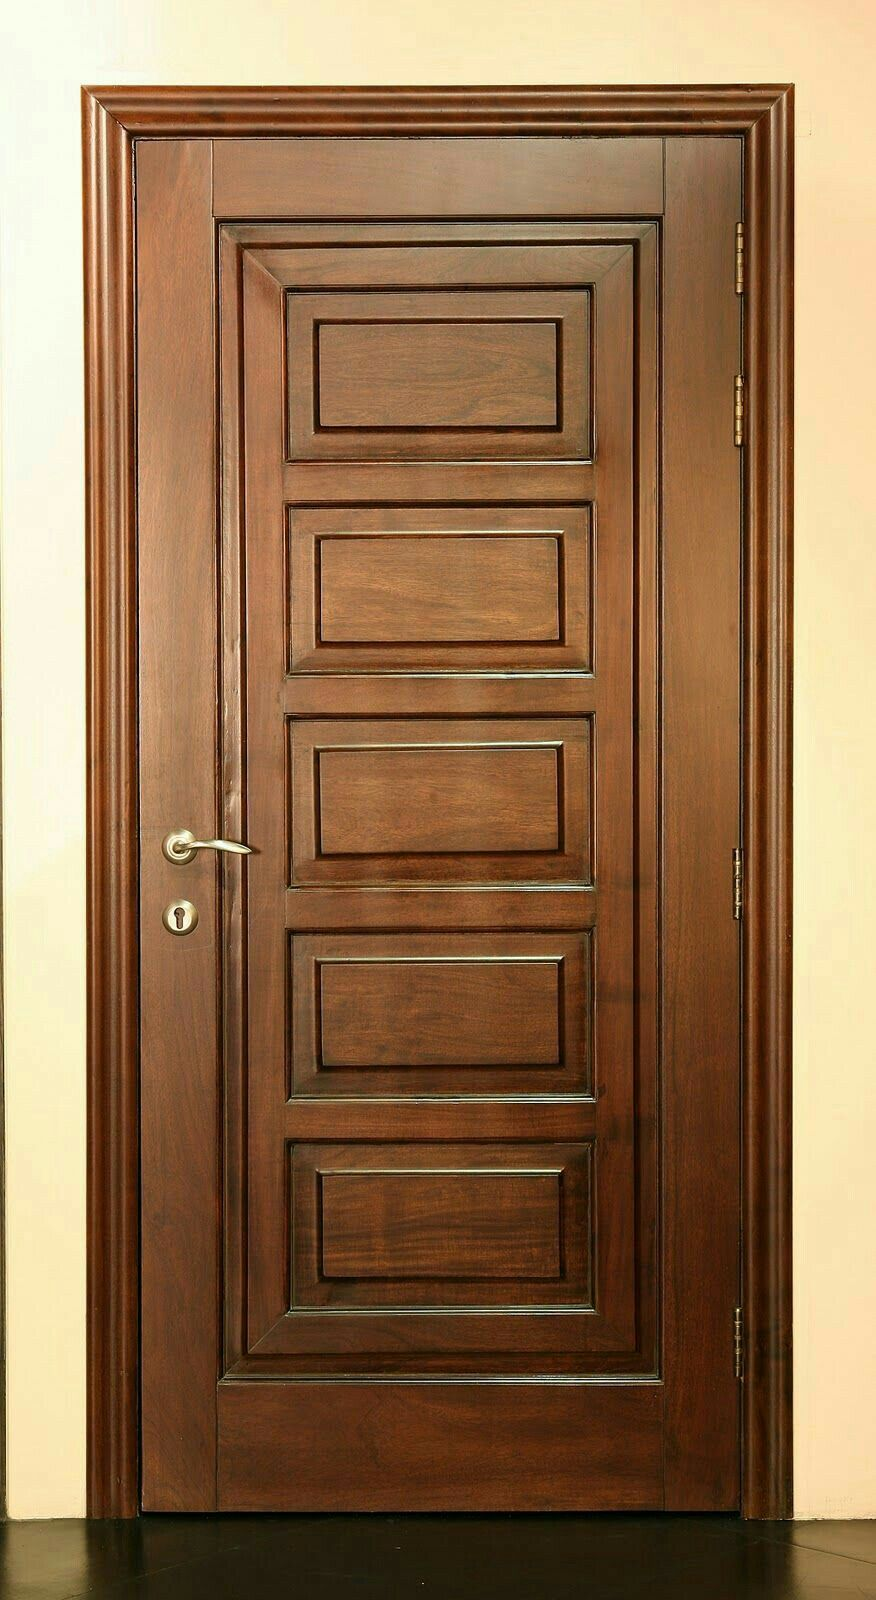 Pin By Umair Iftikhar On Wood Doors Interior Wooden Door Design Wooden Main Door Design Wooden Doors Interior